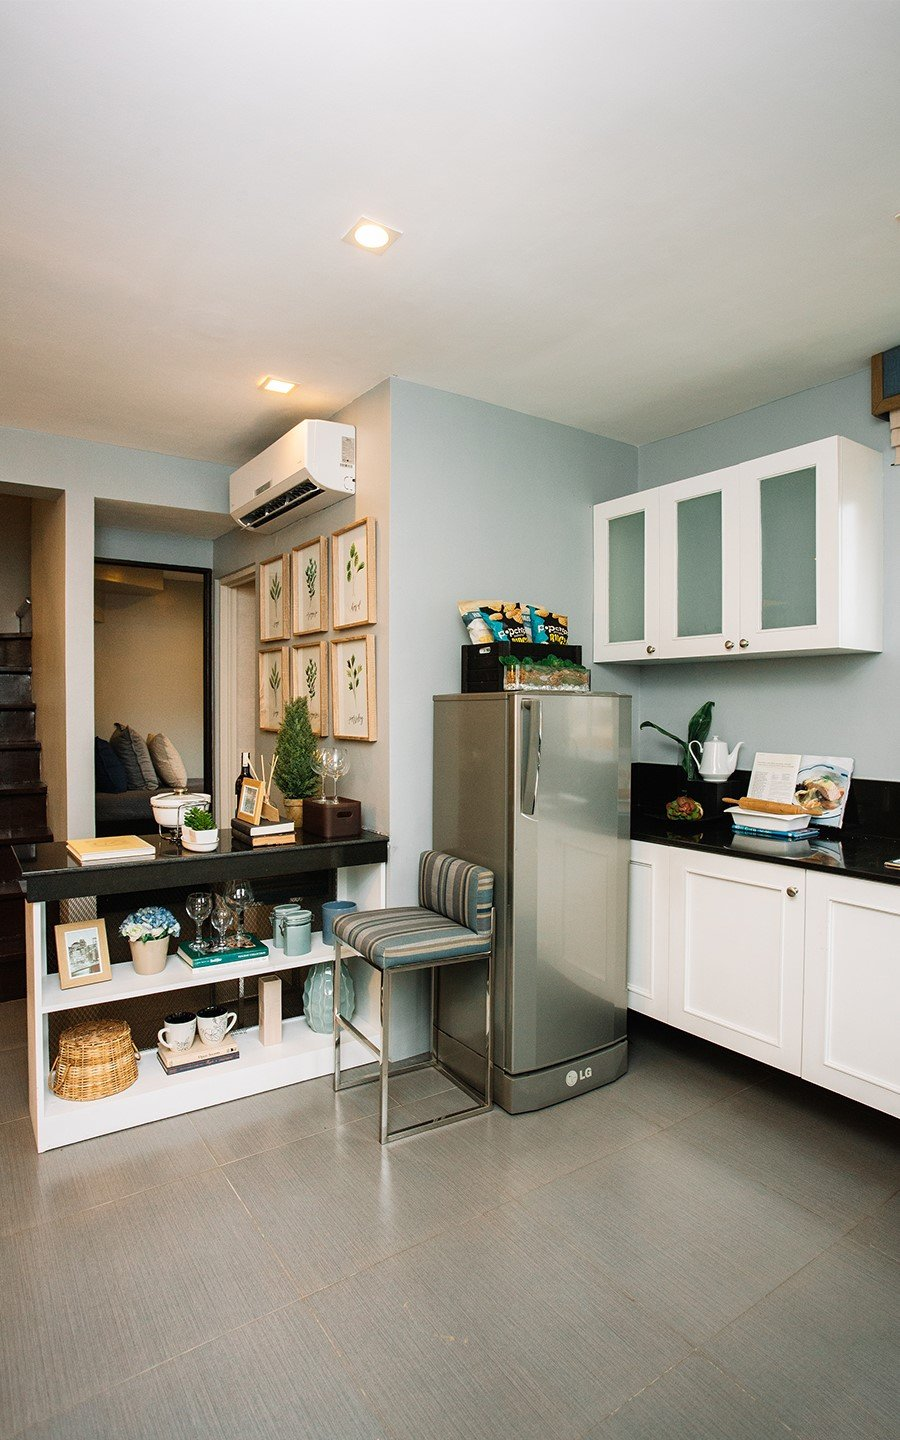 Ella home kitchen area with refrigerator